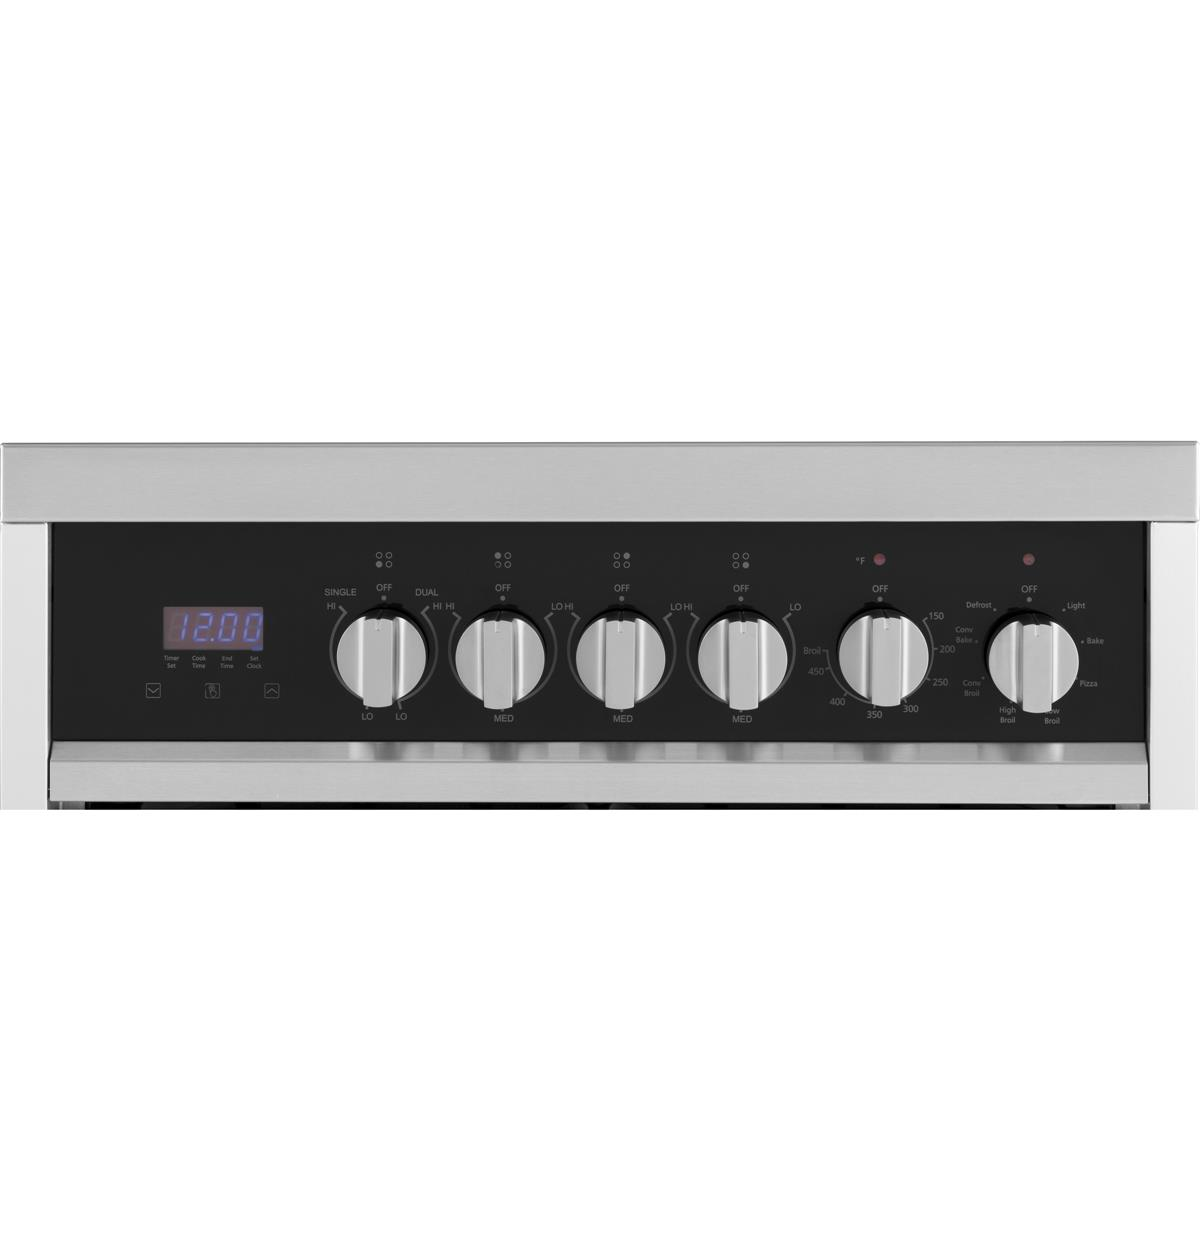 Stainless Free Standing Ranges HCR2250AES Control Panel